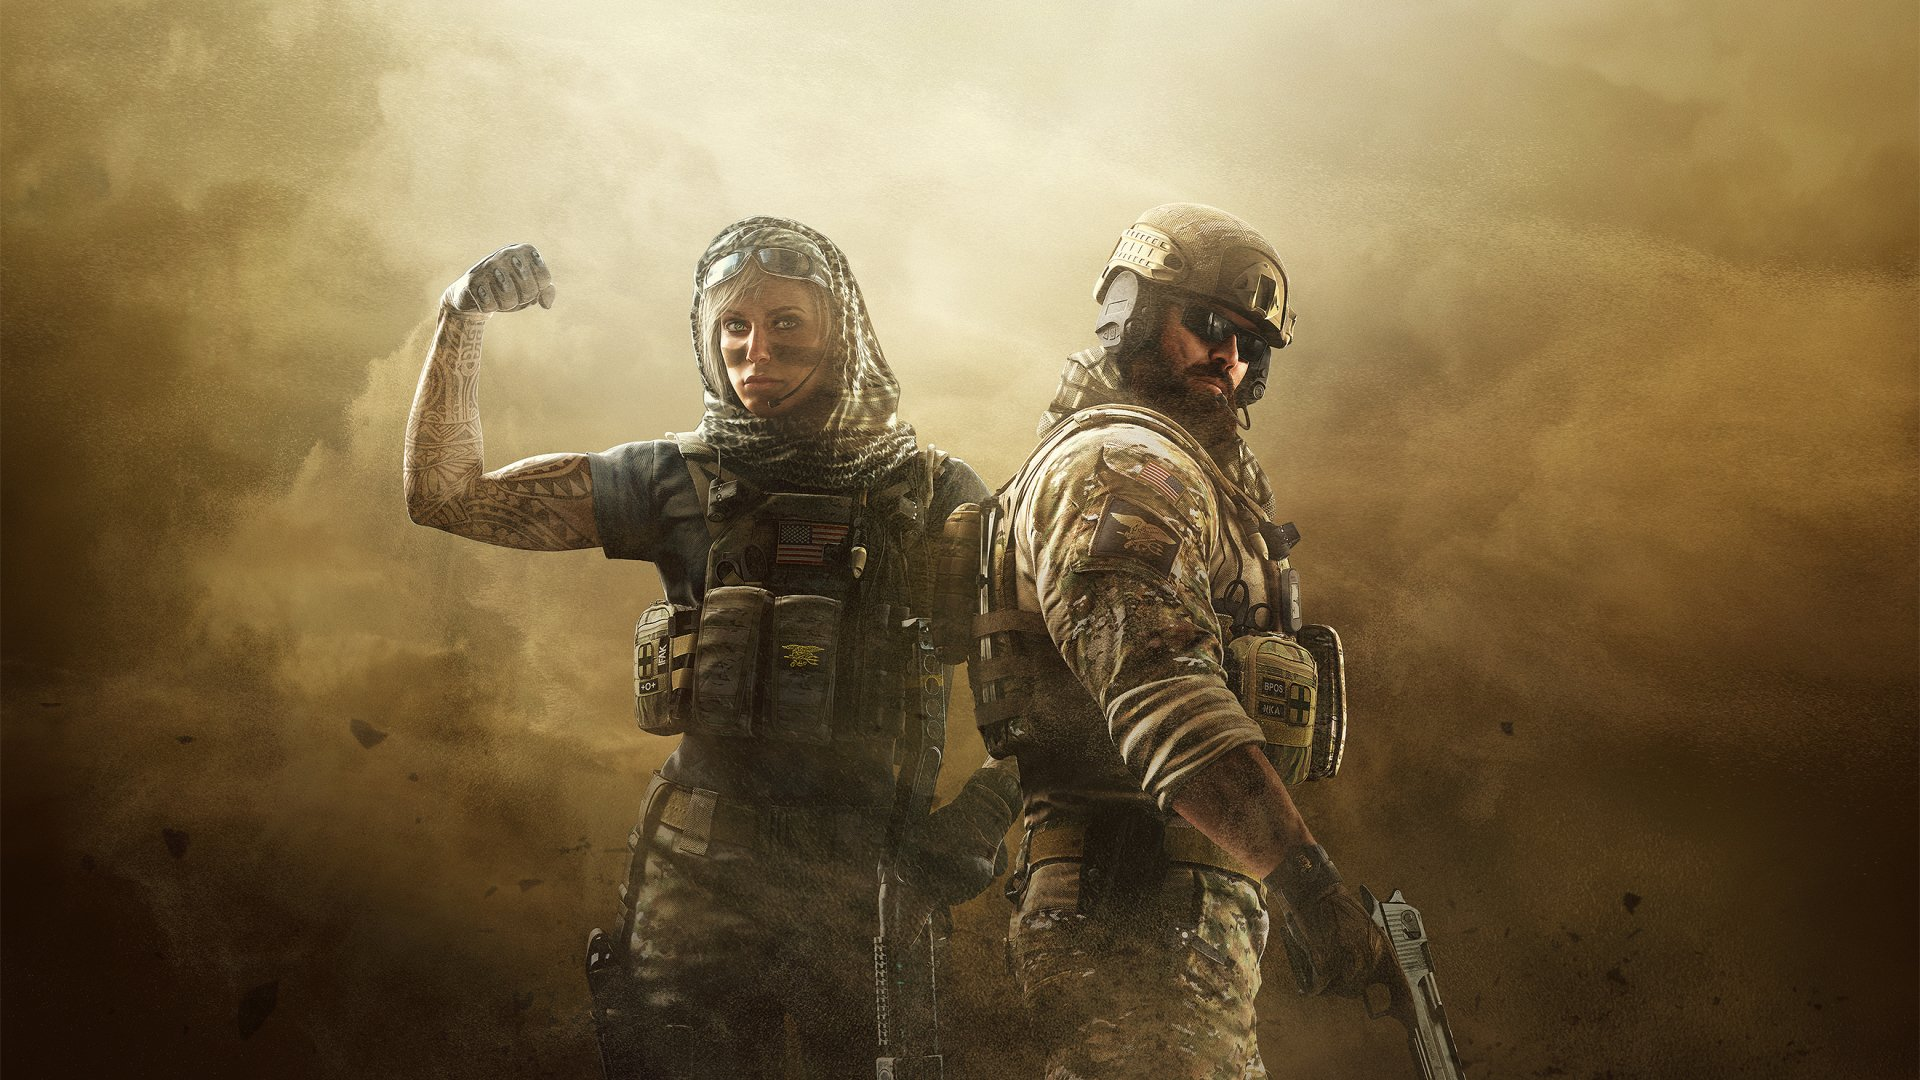 Datorspel - Tom Clancy's Rainbow Six: Siege  Blackbeard (Tom Clancy's Rainbow Six: Siege) Valkyrie (Tom Clancy's Rainbow Six: Siege) Datorspel Fog Operation Dust Line Bakgrund